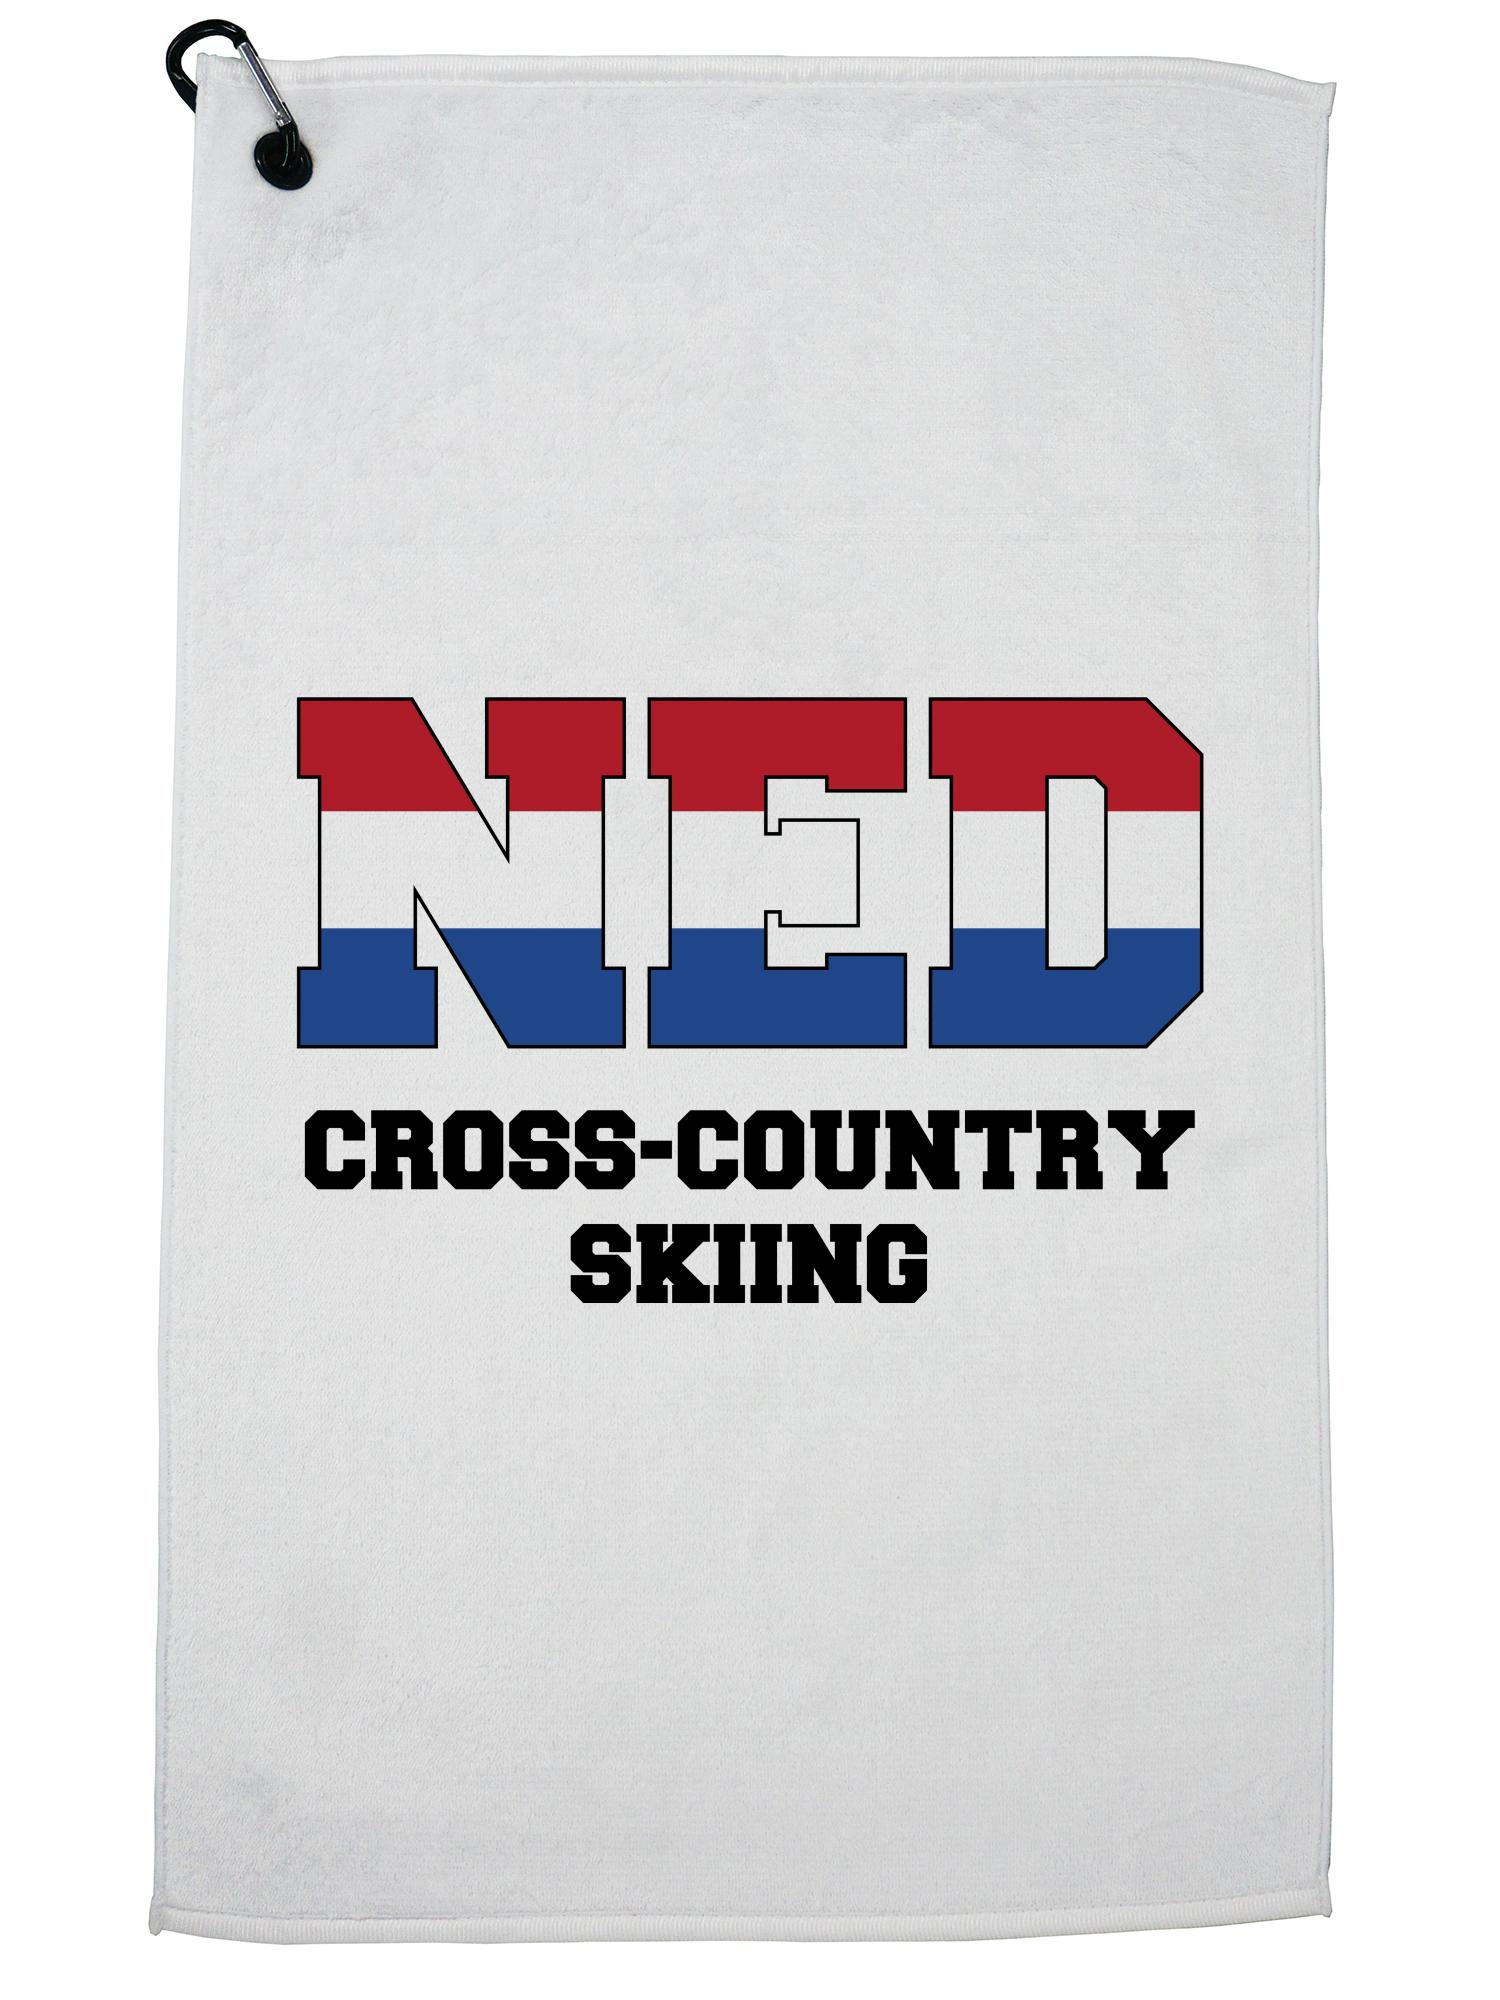 Dutch Cross-Country Skiing Winter Olympic NED Flag Golf Towel with Carabiner Clip by Hollywood Thread